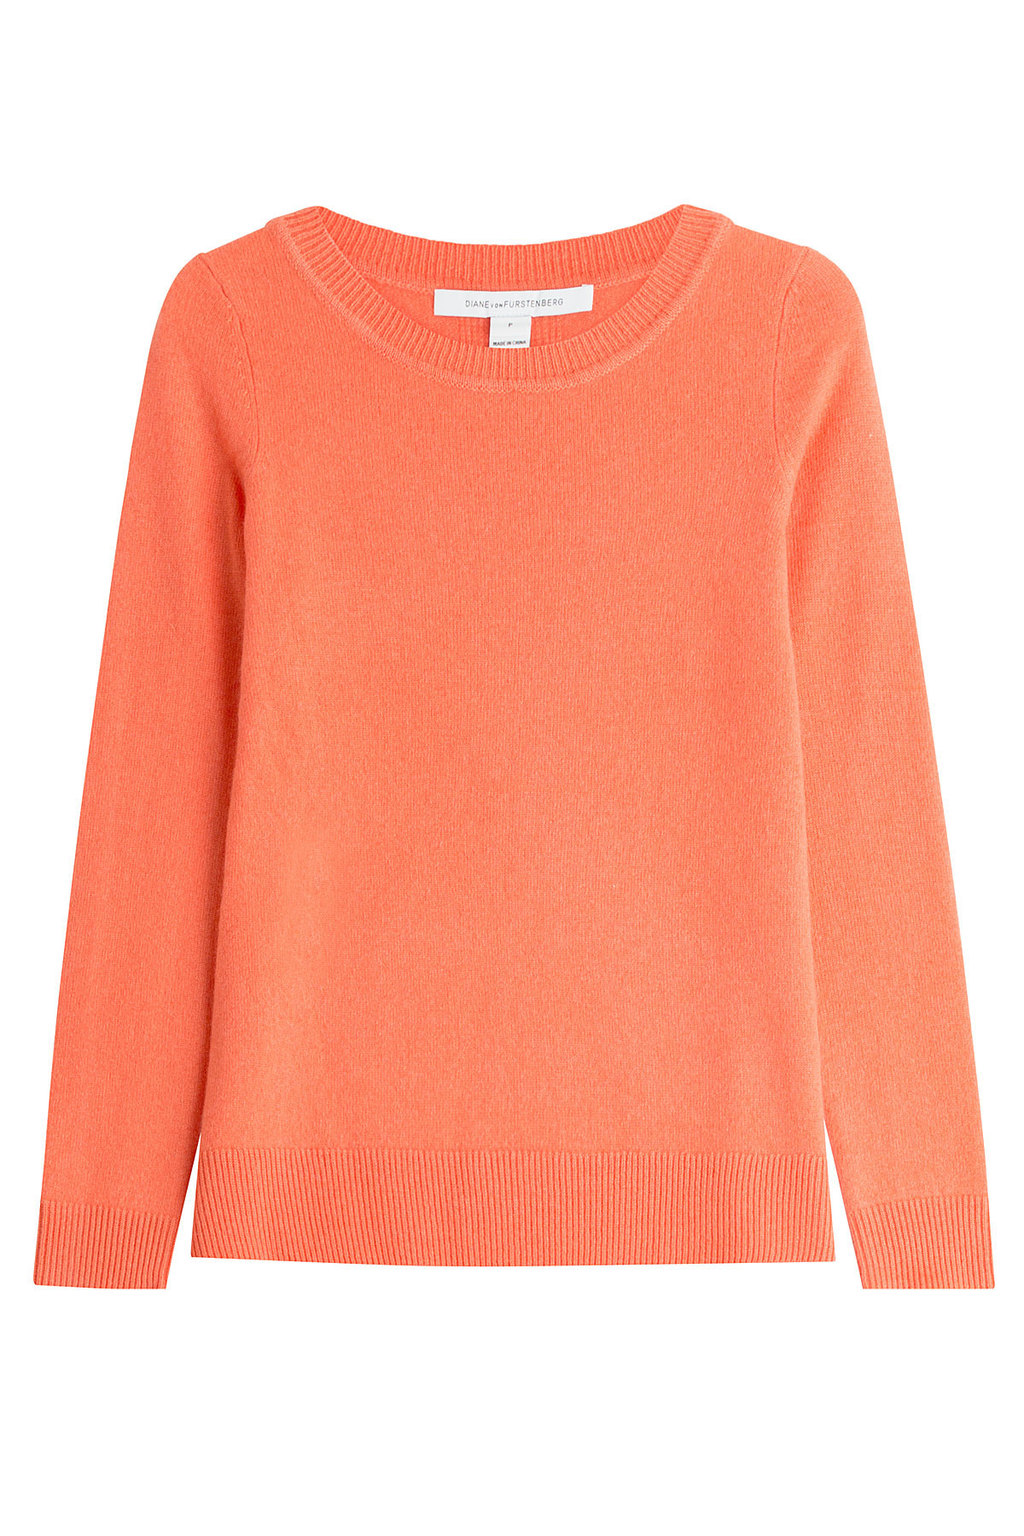 Cashmere Pullover - pattern: plain; style: standard; predominant colour: coral; occasions: casual; length: standard; fit: slim fit; neckline: crew; fibres: cashmere - 100%; sleeve length: long sleeve; sleeve style: standard; texture group: knits/crochet; pattern type: fabric; season: s/s 2016; wardrobe: highlight